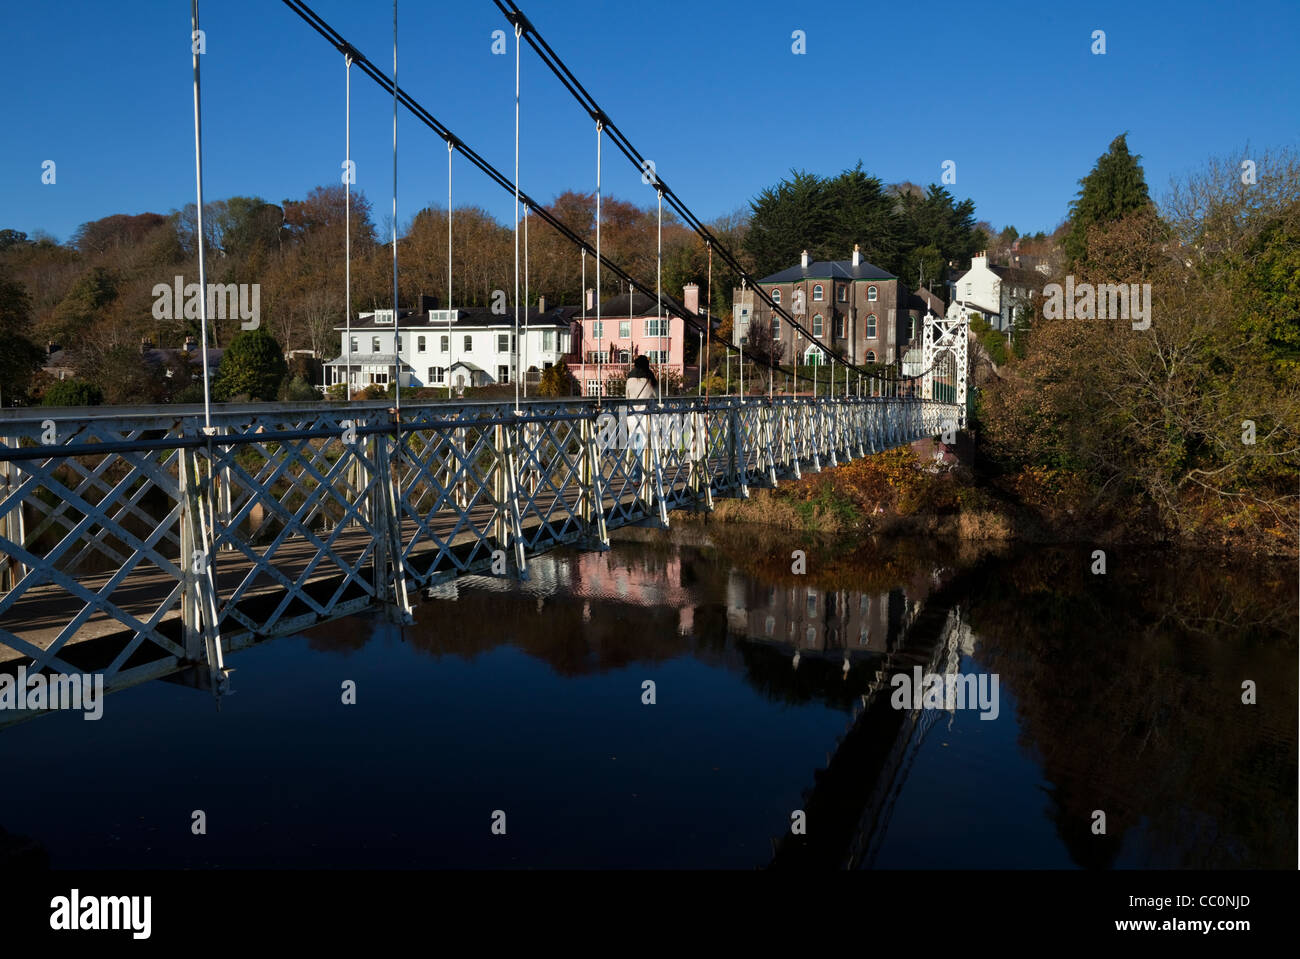 Daly's Suspension Bridge 1927 over the River Lee, Joins Sundays Well to the Mardyke, Cork City, Ireland. - Stock Image